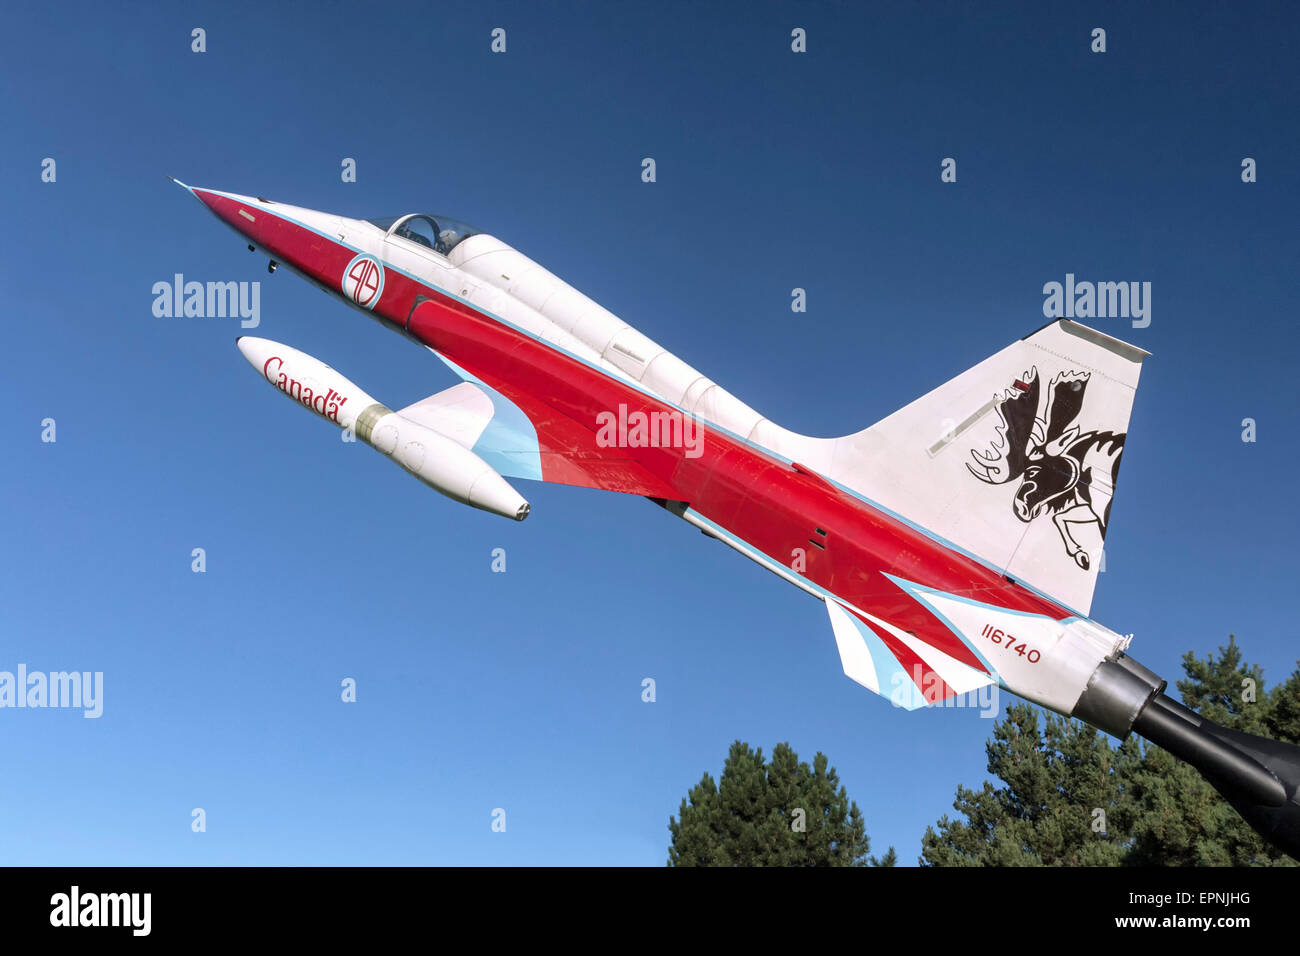 Canadair CF5 fighter of the RCAF - Stock Image